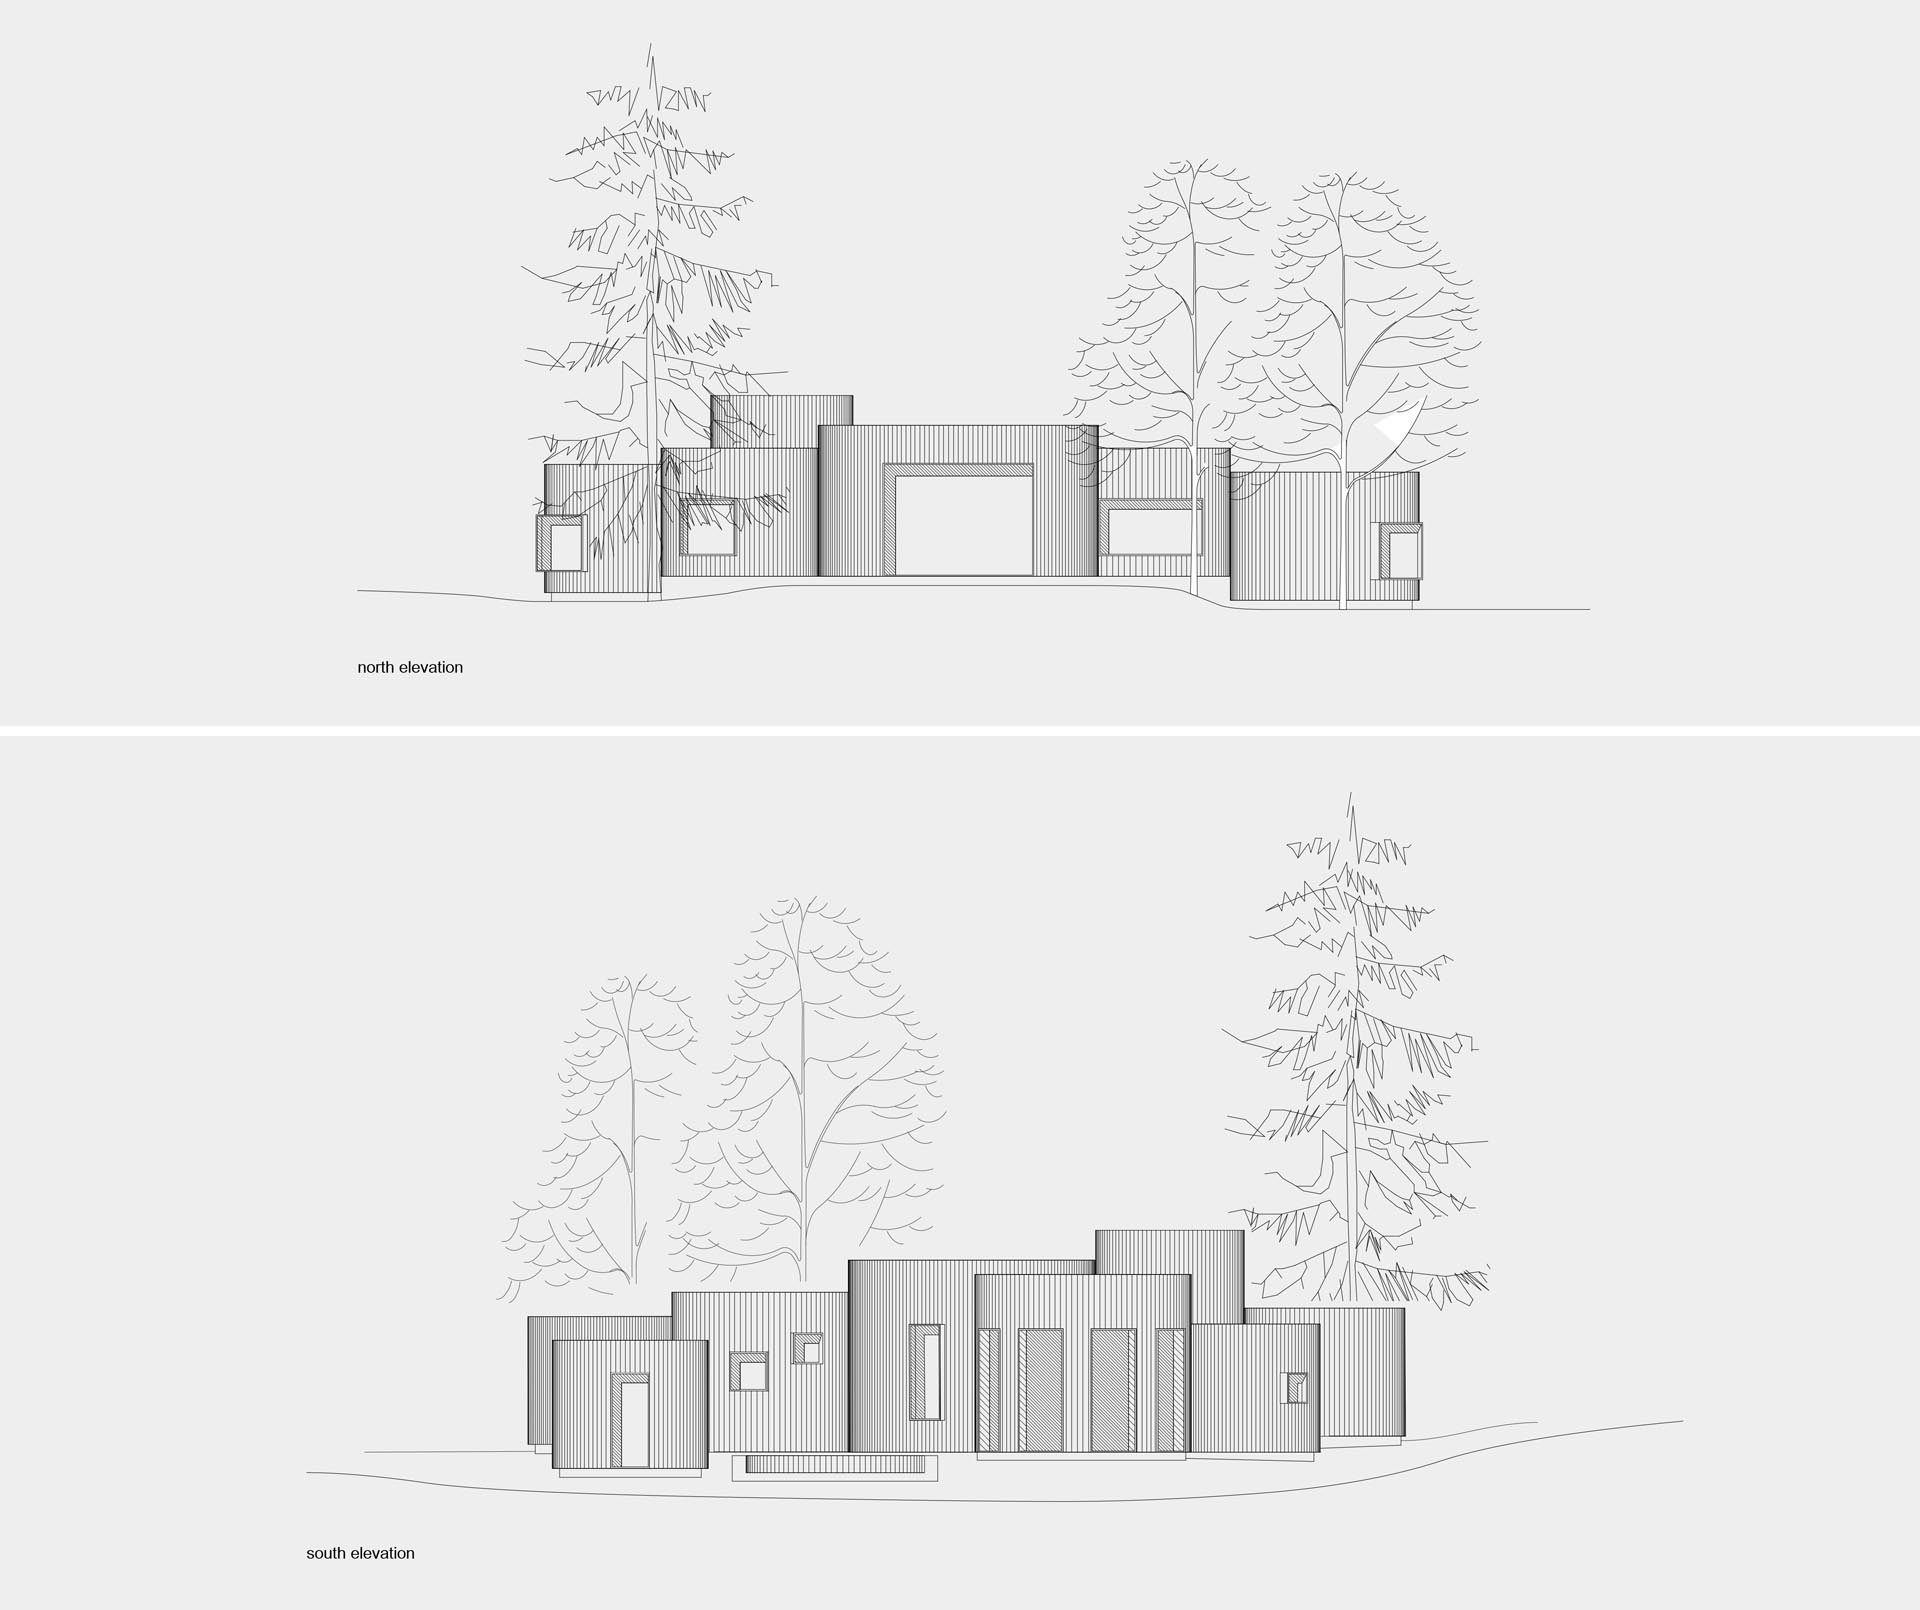 A modern house with a wood exterior and curved rooms.